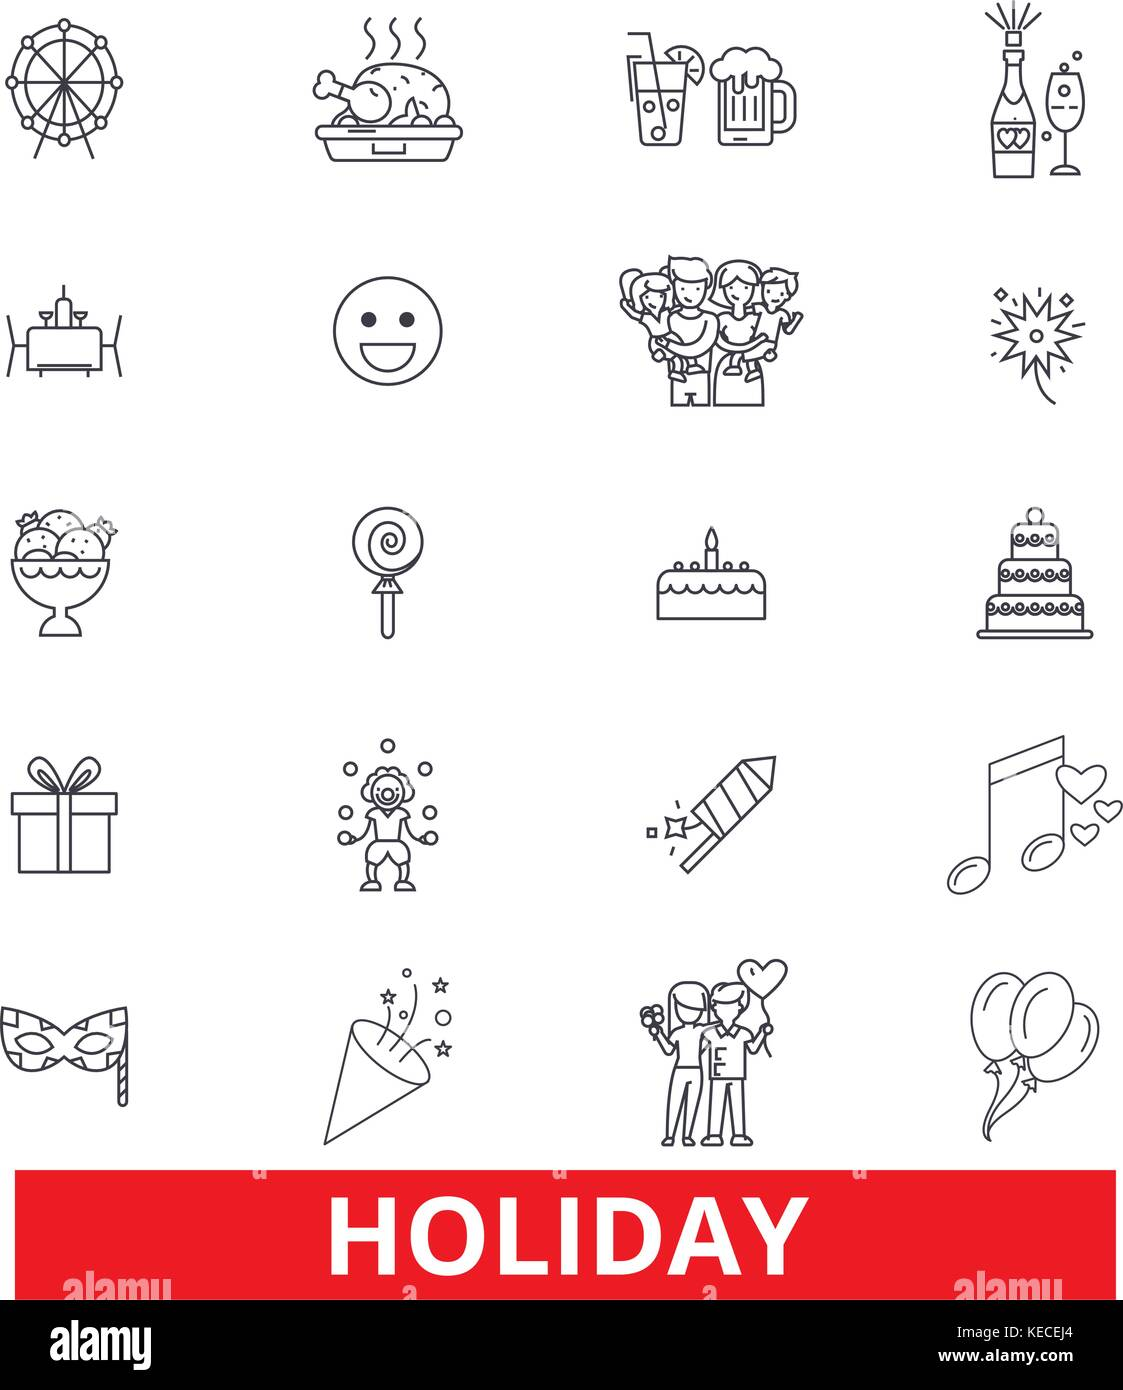 Holidays,break, festival,vacation, weekend, relaxation, day off, fiesta, party line icons. Editable strokes. Flat - Stock Vector